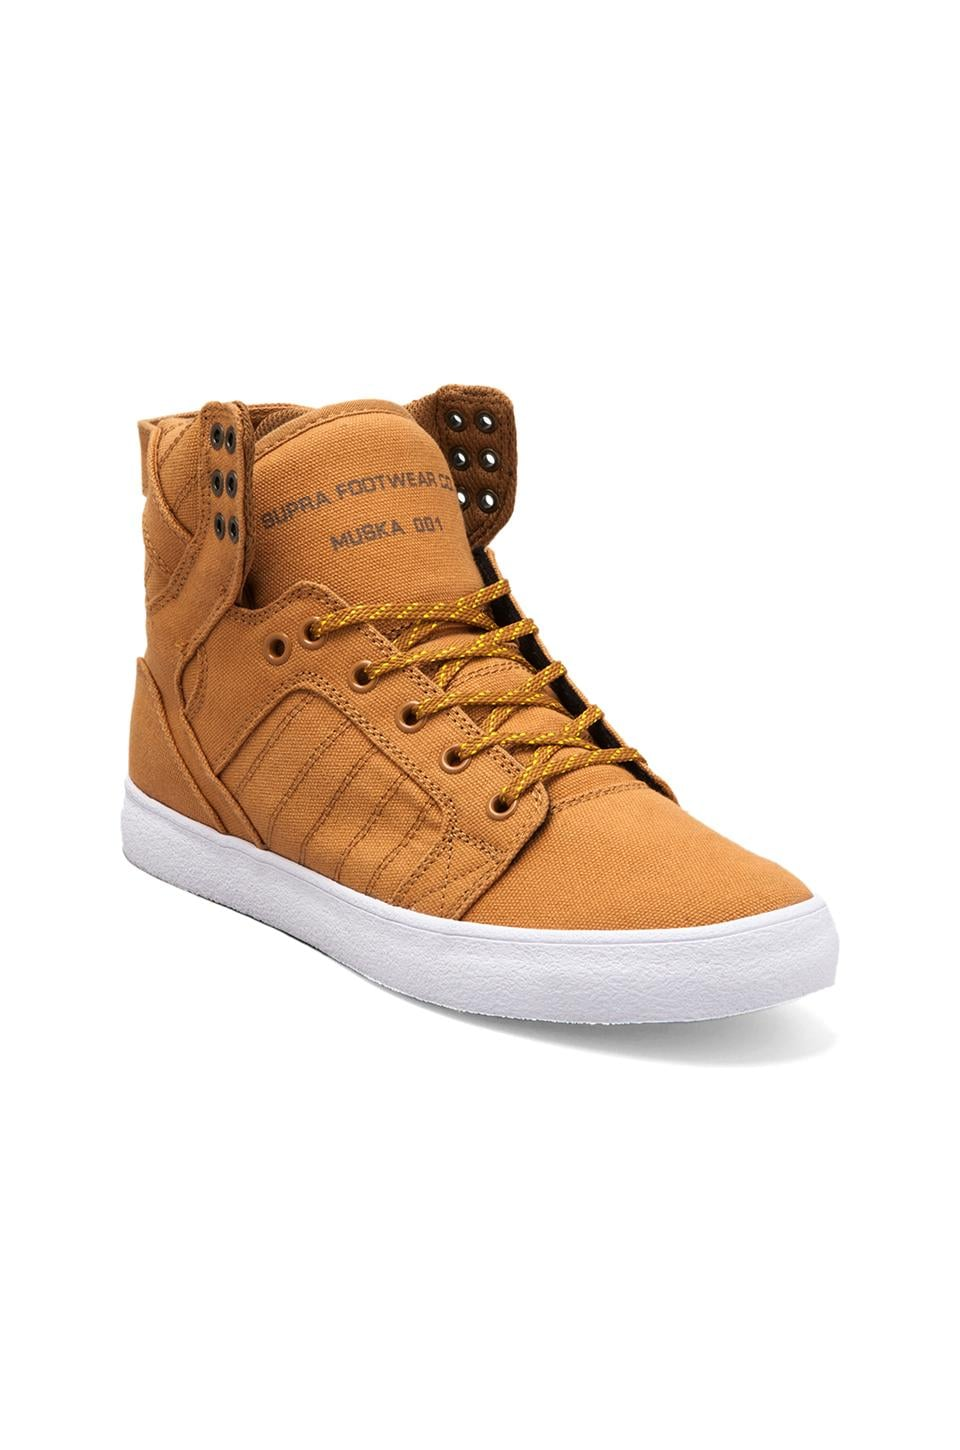 Supra Skytop in Golden Oak/Pumpkin